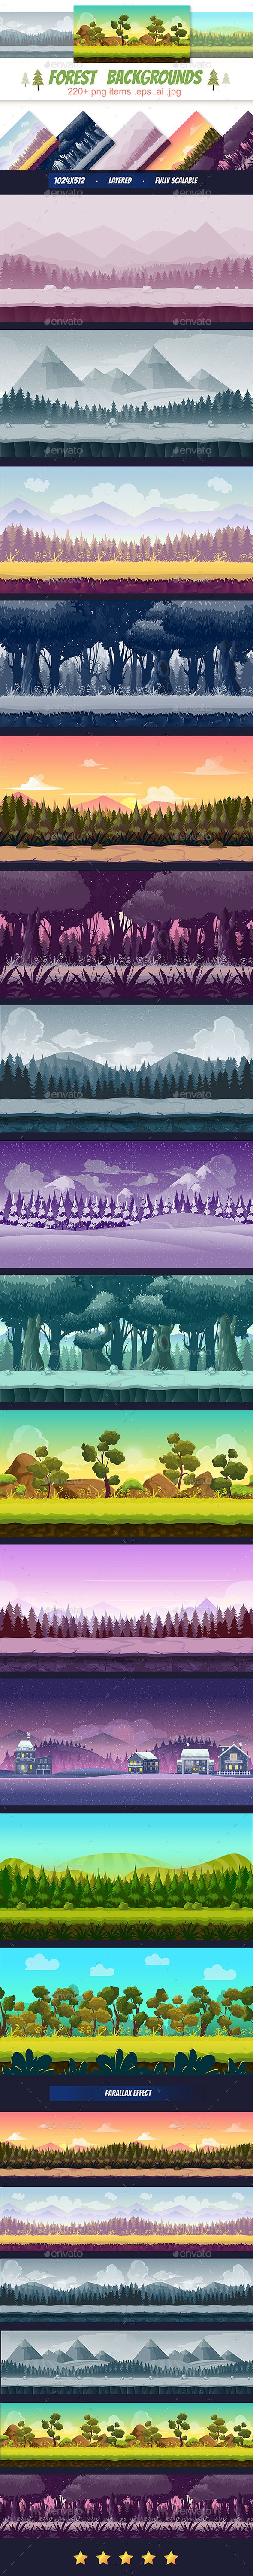 Forest Backgrounds Pack - #Backgrounds #Game Assets